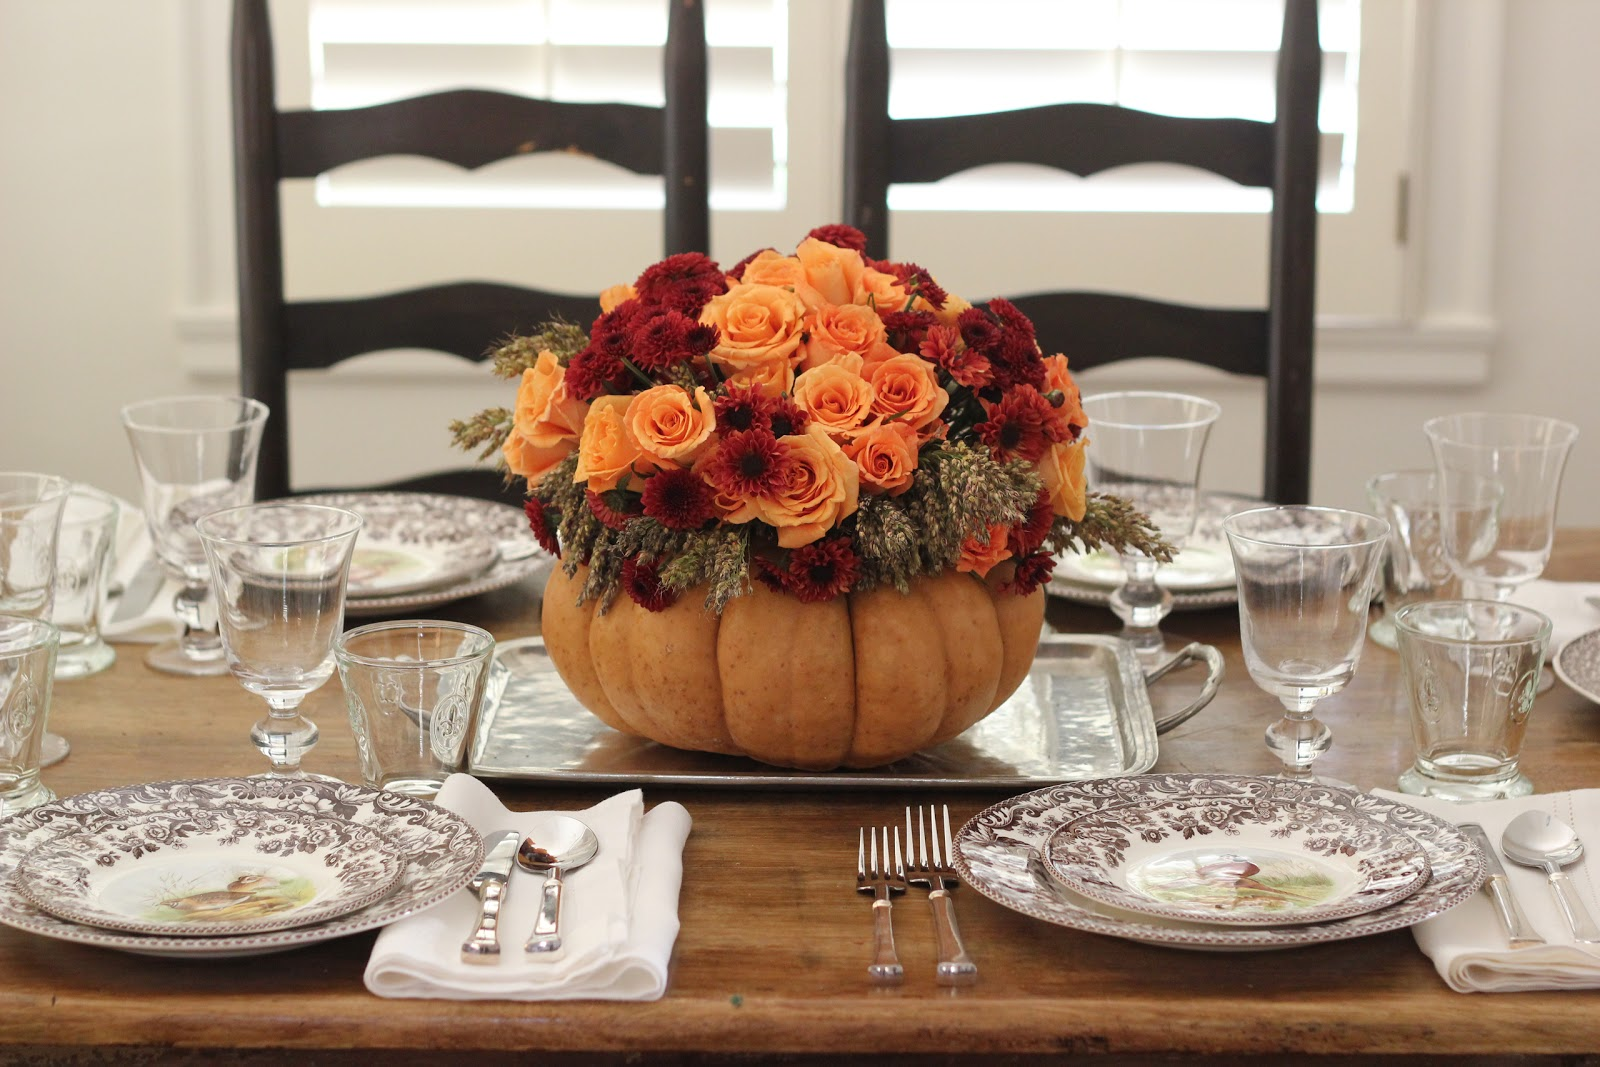 Jenny steffens hobick thanksgiving table setting diy for Elegant table setting for thanksgiving